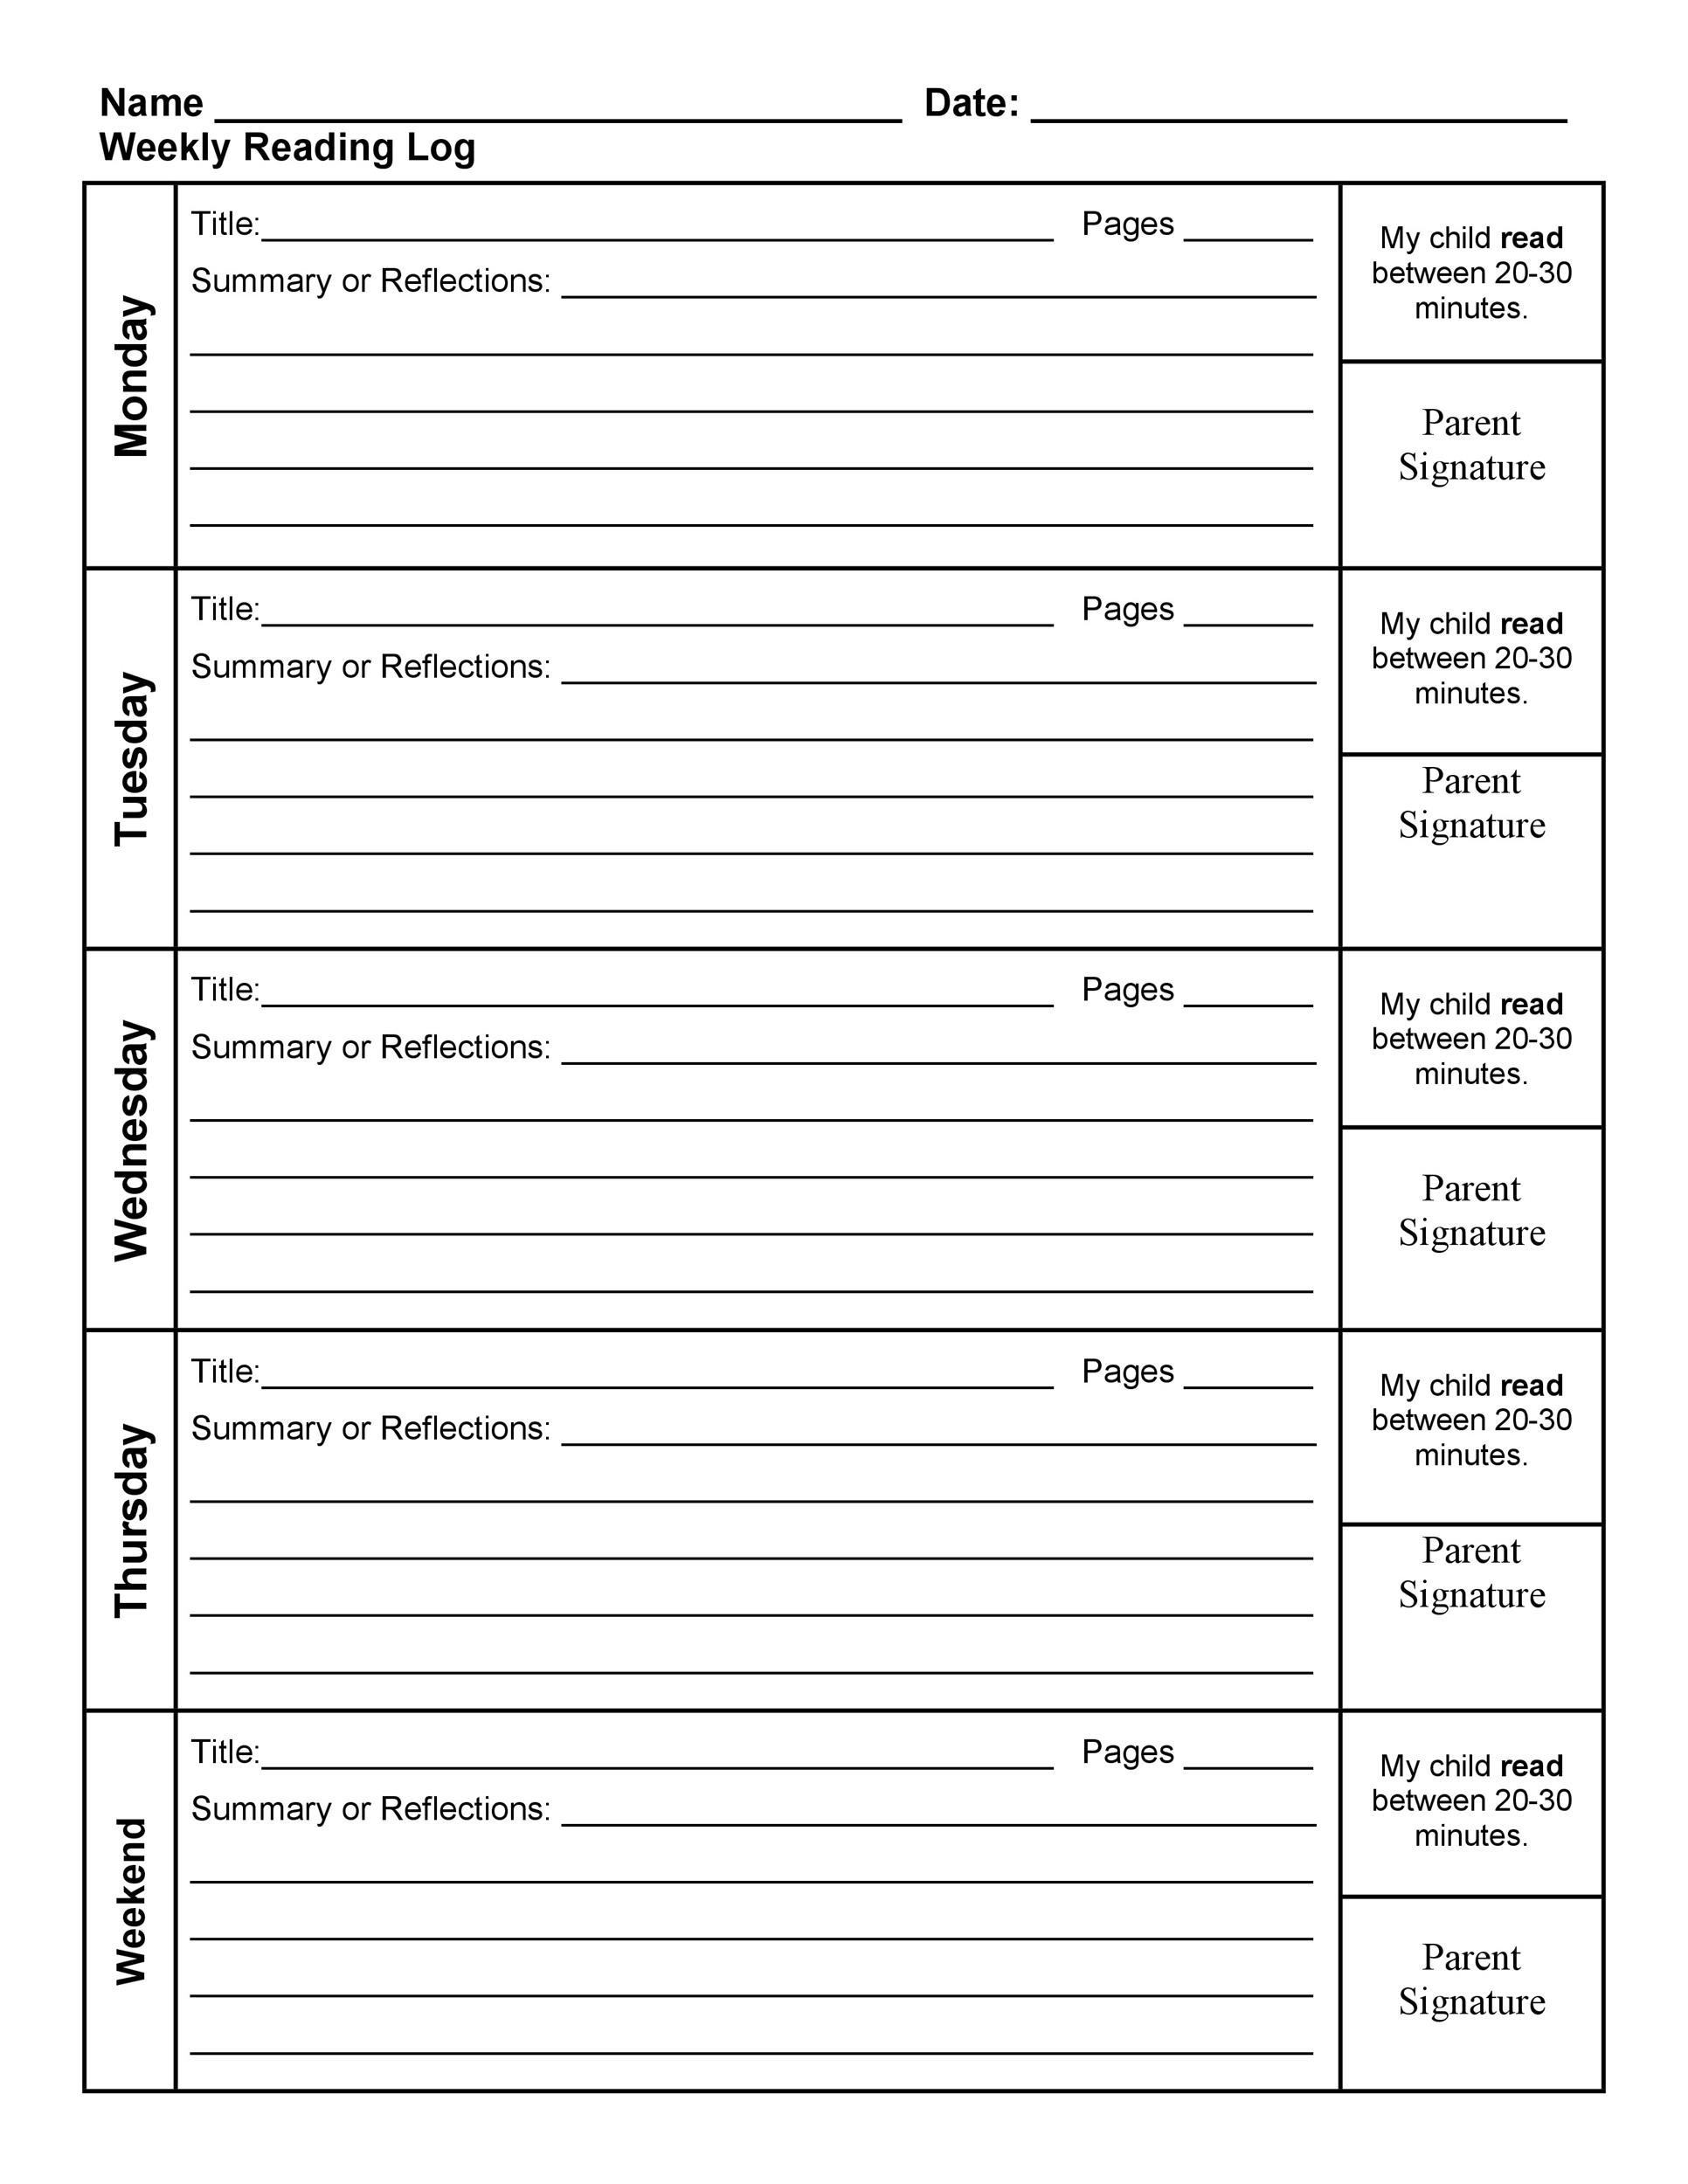 47 Printable Reading Log Templates for Kids Middle School Adults – Weekly Log Template